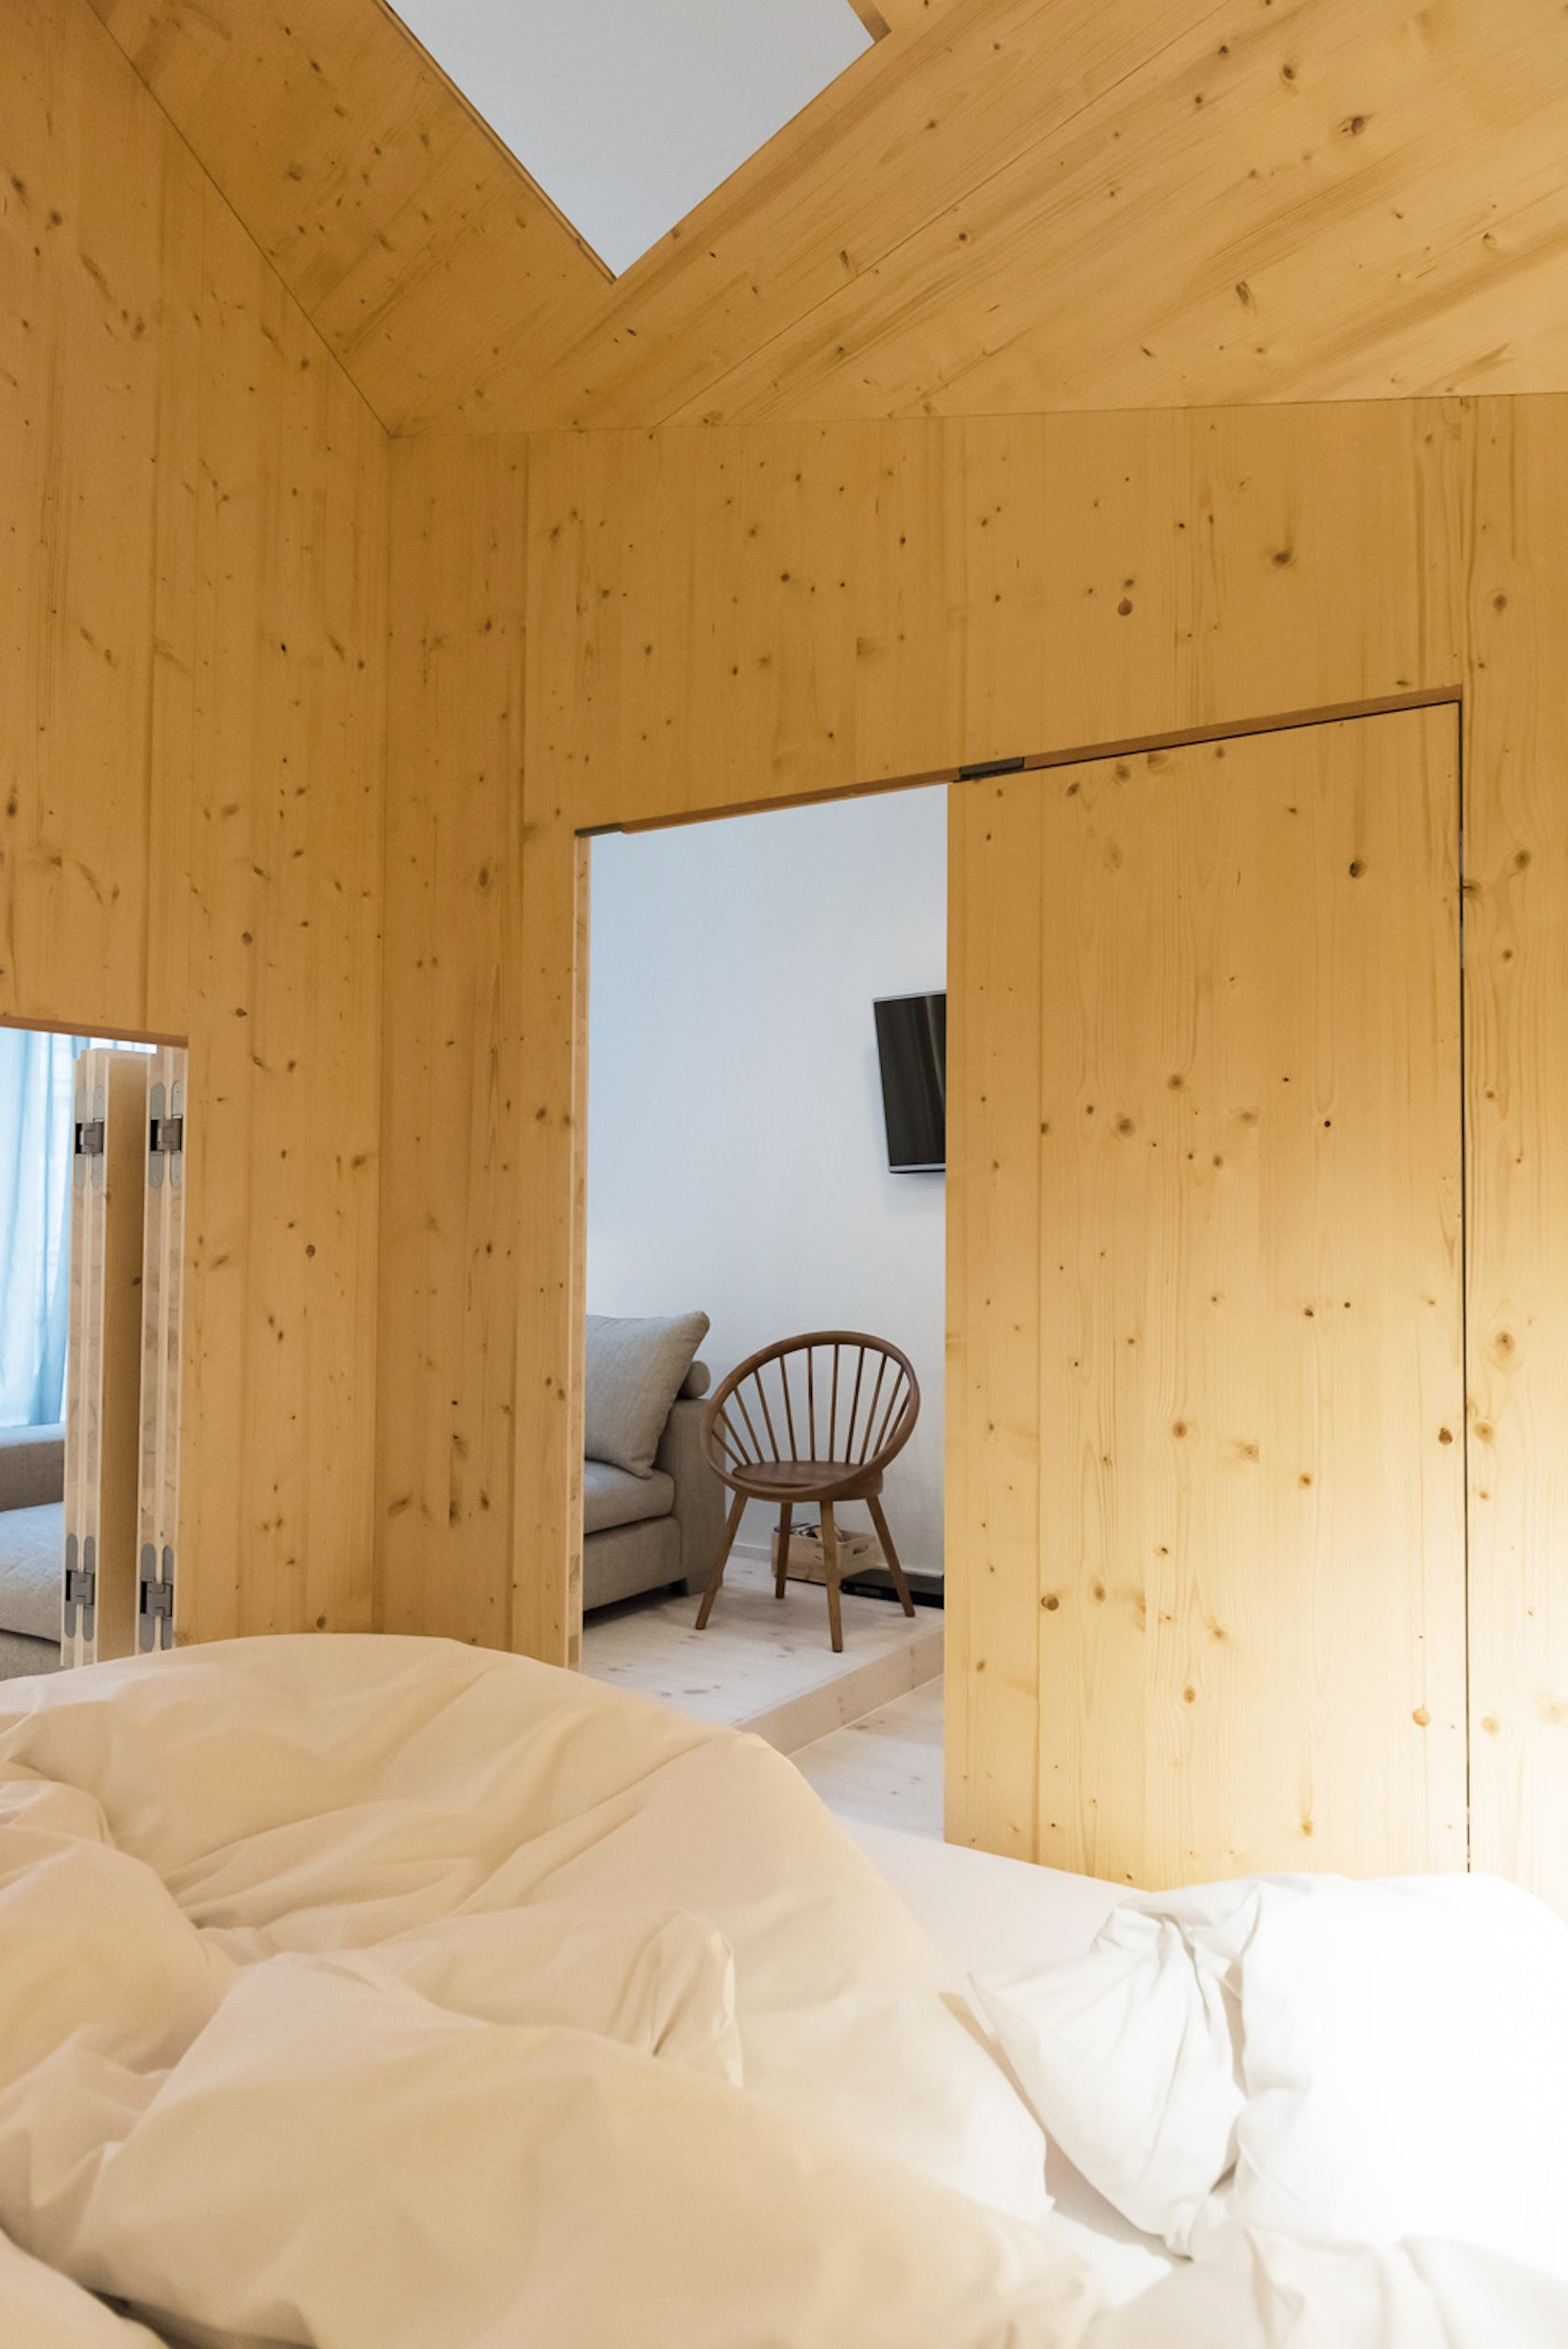 Hotel Rooms By Sigurd Larsen For Michelberger Hotel. Room